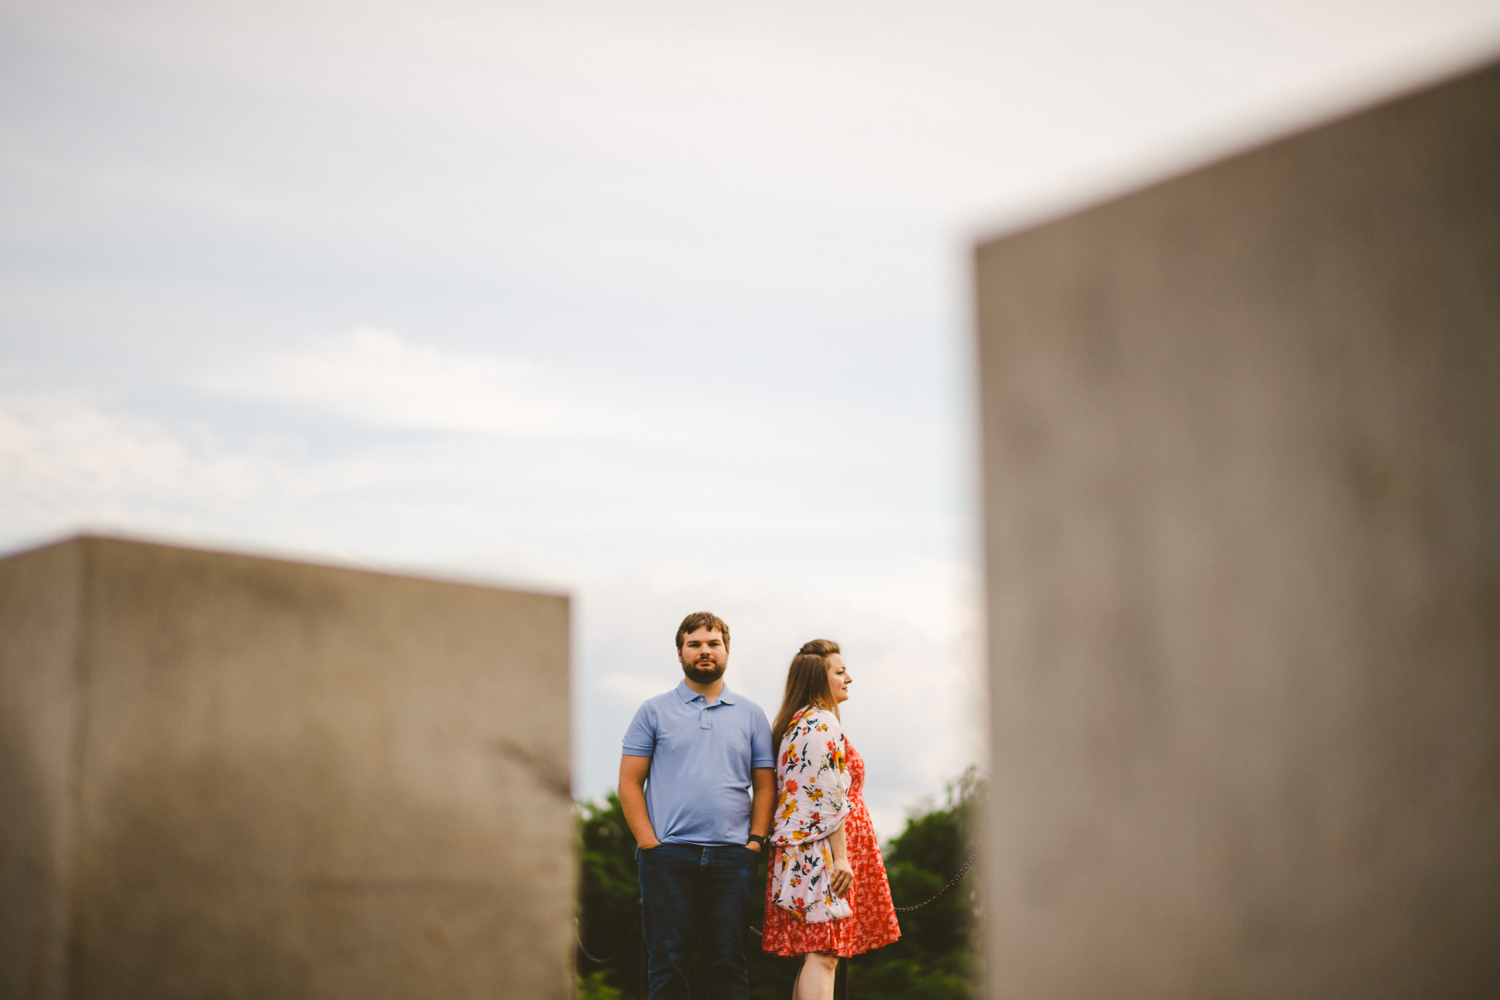 006 - creative engagement photo washington dc wedding photographer.jpg